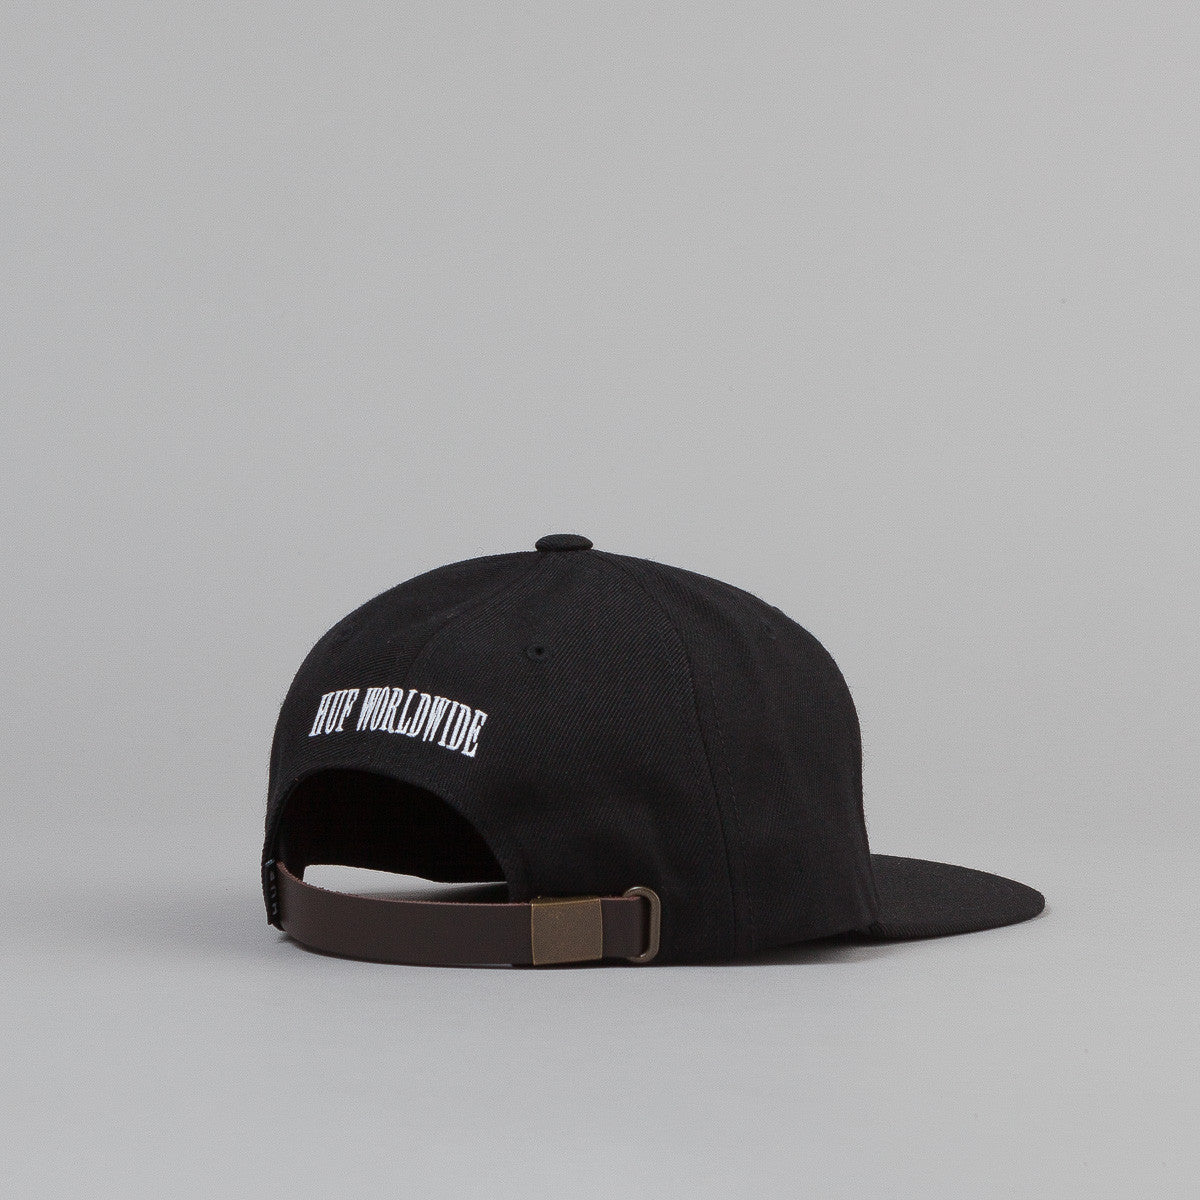 HUF X Slap 6 Panel Cap - Black